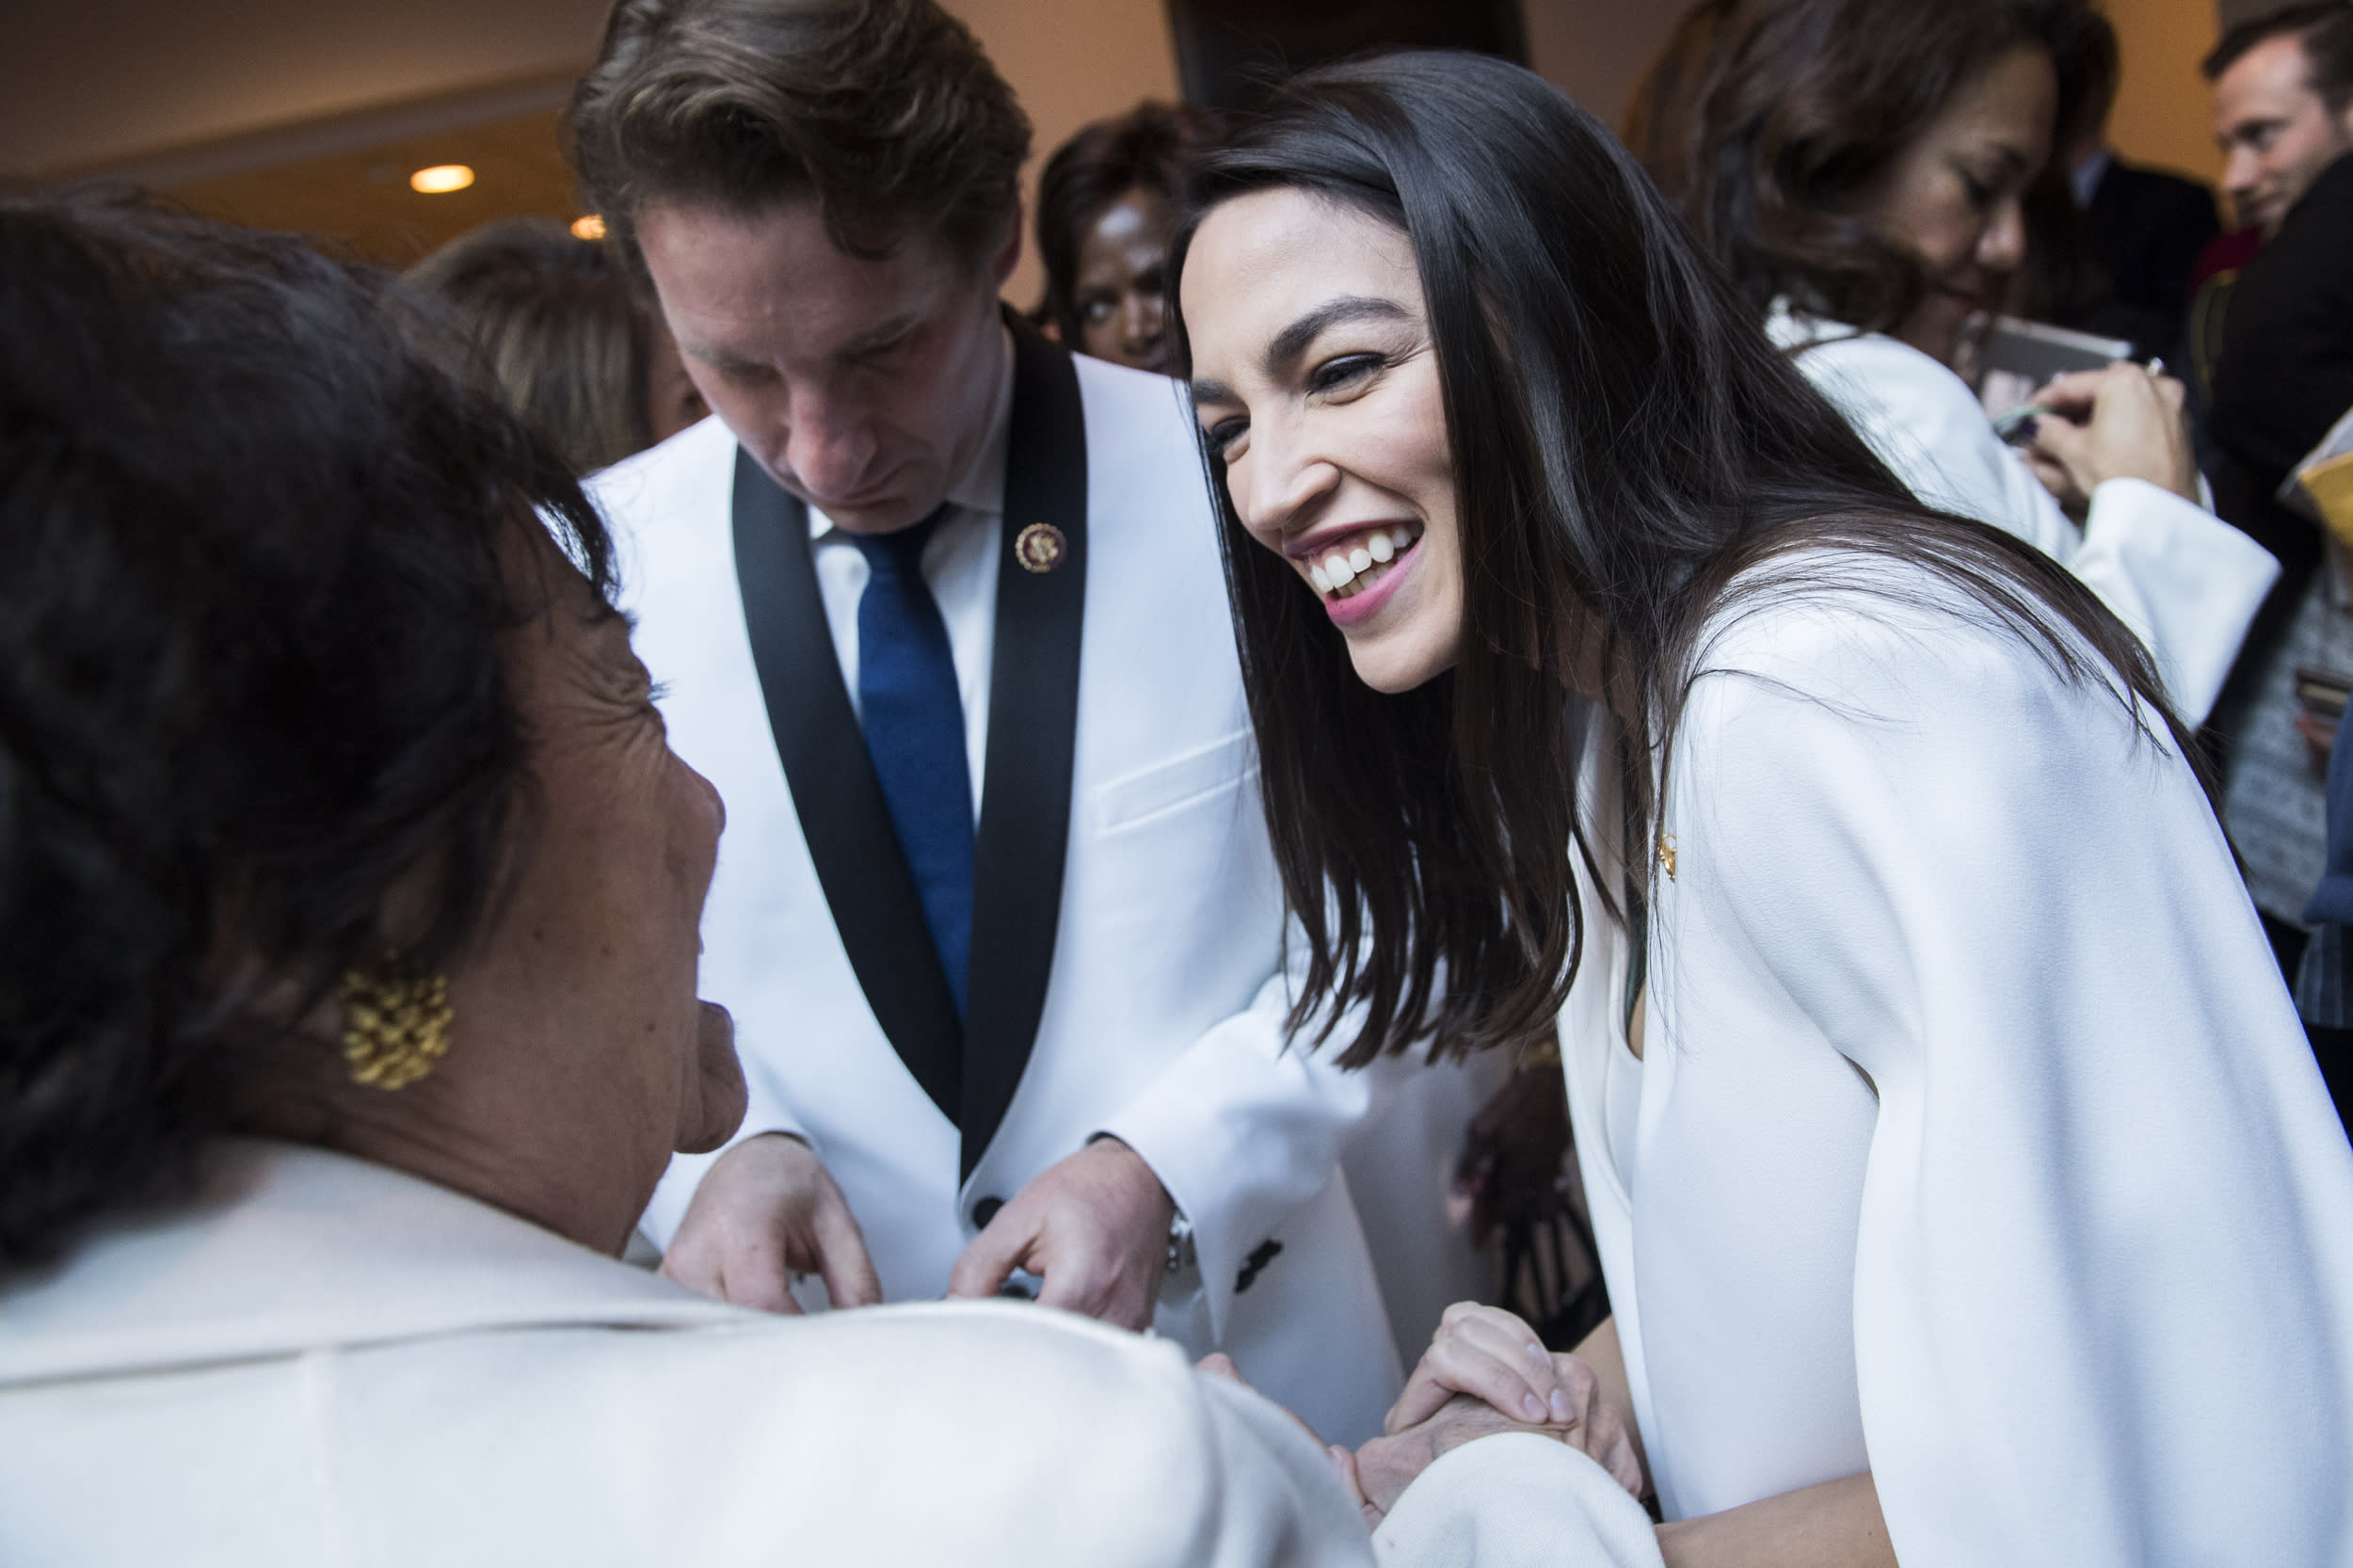 UNITED STATES - FEBRUARY 05: Rep. Alexandria Ocasio-Cortez, D-N.Y., right, greets Rep. Nita Lowey, D-N.Y., after a group photo of House Democrats in the Capitol Visitor Center who will wear 'suffragette white' to the State of the Union address to show solidarity for women's agendas on Tuesday, February 5, 2019. (Photo By Tom Williams/CQ Roll Call)